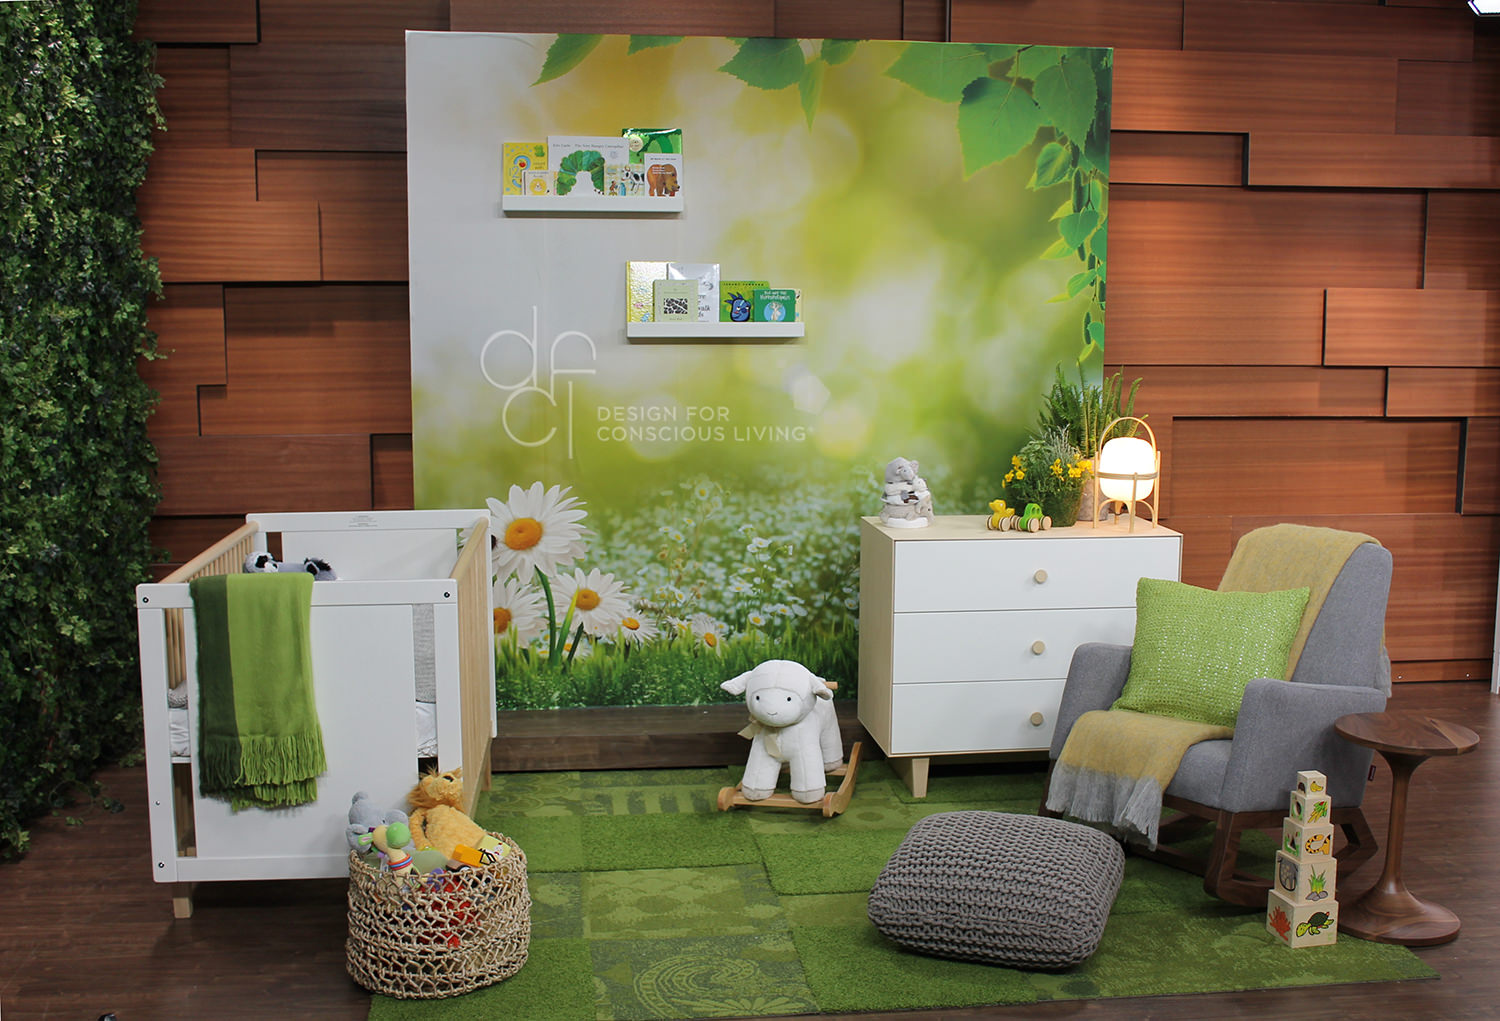 nature inspired furniture. A Nature Inspired Nursery By Design For Conscious Living Presented On Citytv\u0027s Cityline Furniture N